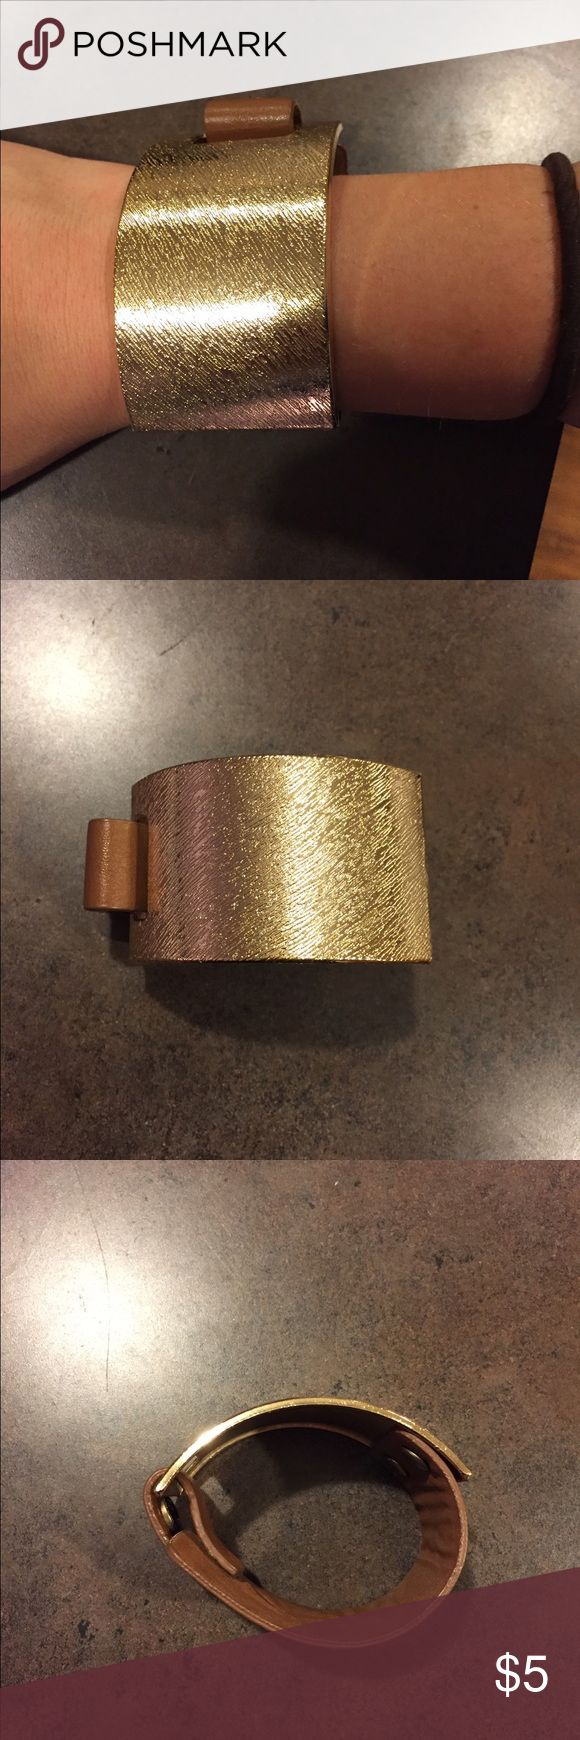 Leather/gold cuff bracelet. The contrast of the gold and leather is fun to match with whatever! Adjustment snap application to fit whatever size wrist. target Jewelry Bracelets